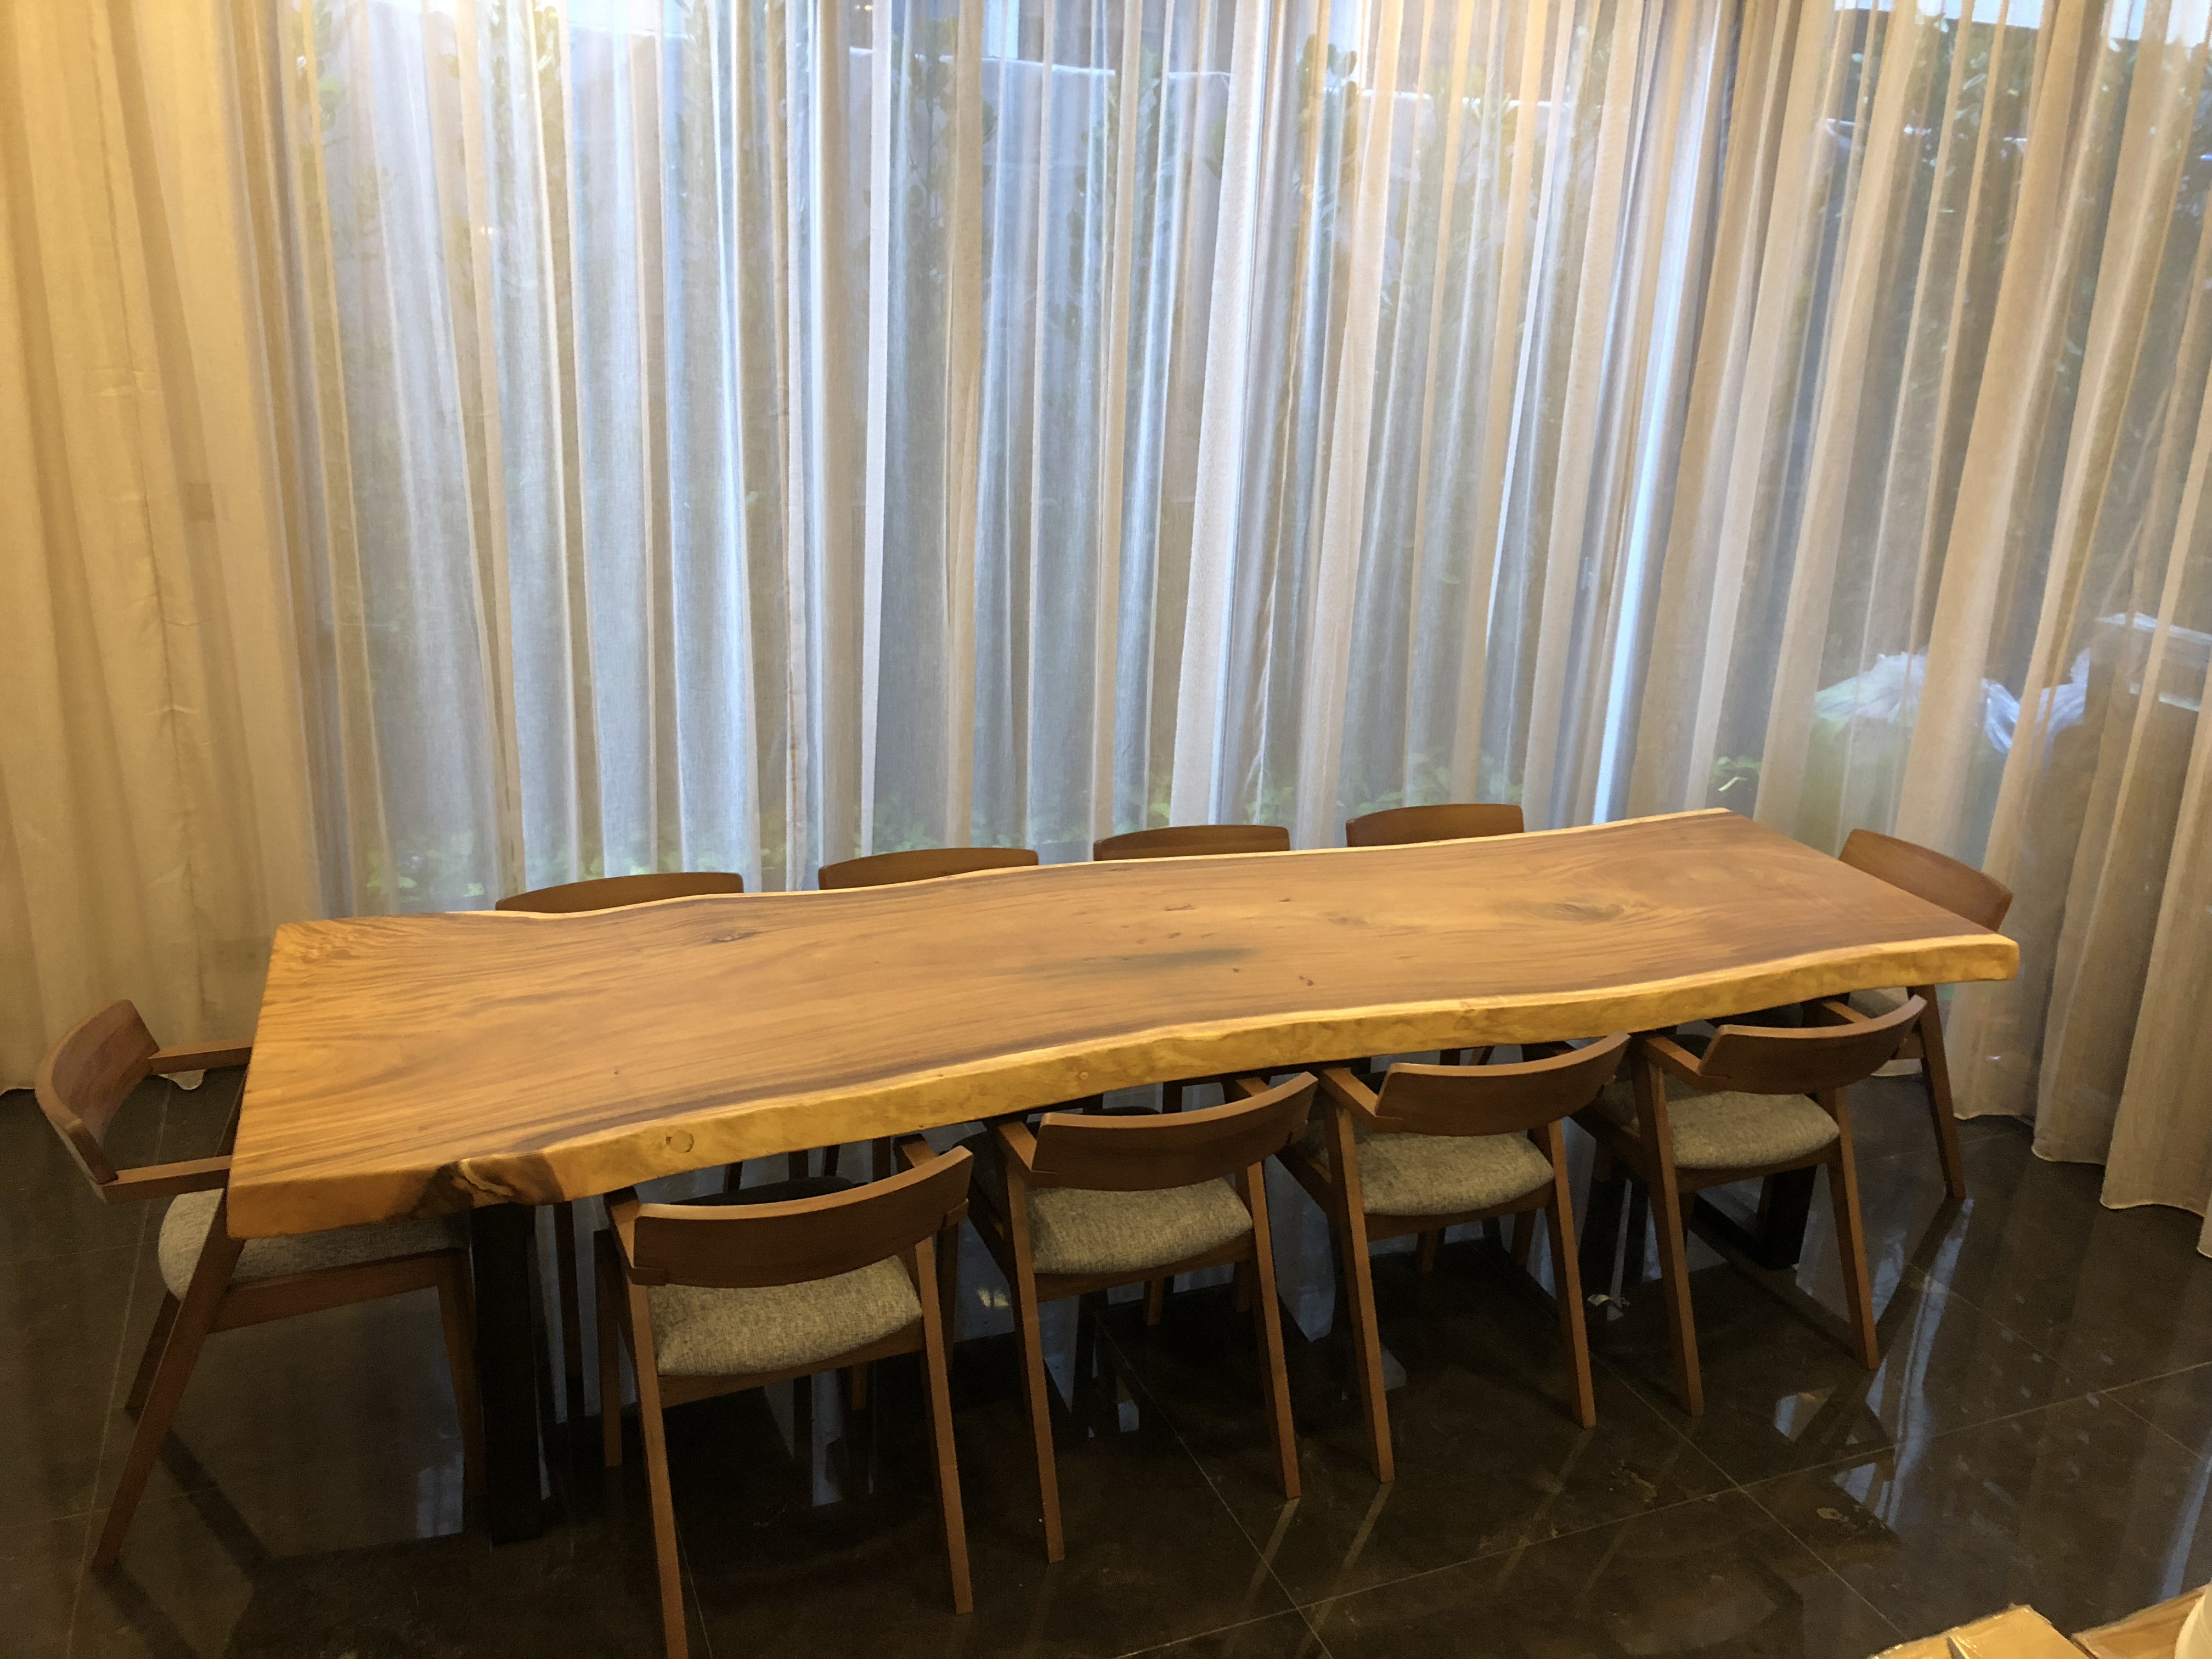 Suar Wood Dining Table Singapore Suar Wood Specialist